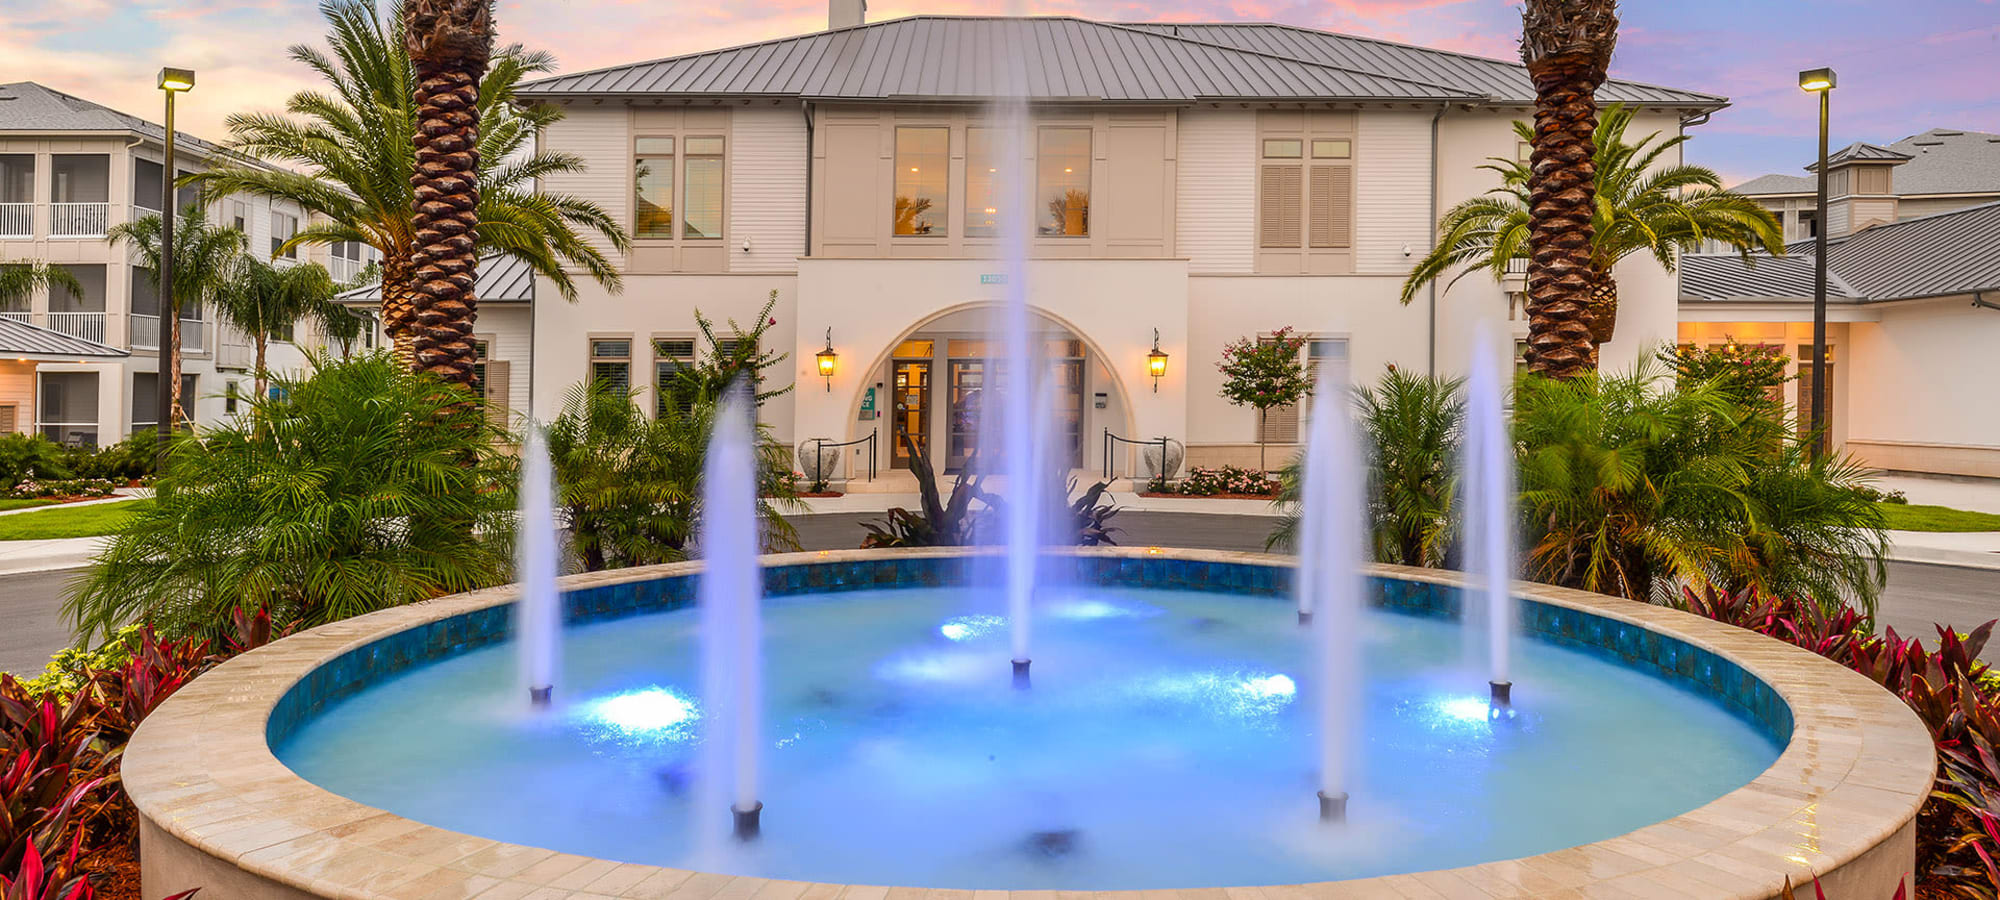 Map & Directions to Palm Bay Club in Jacksonville, Florida